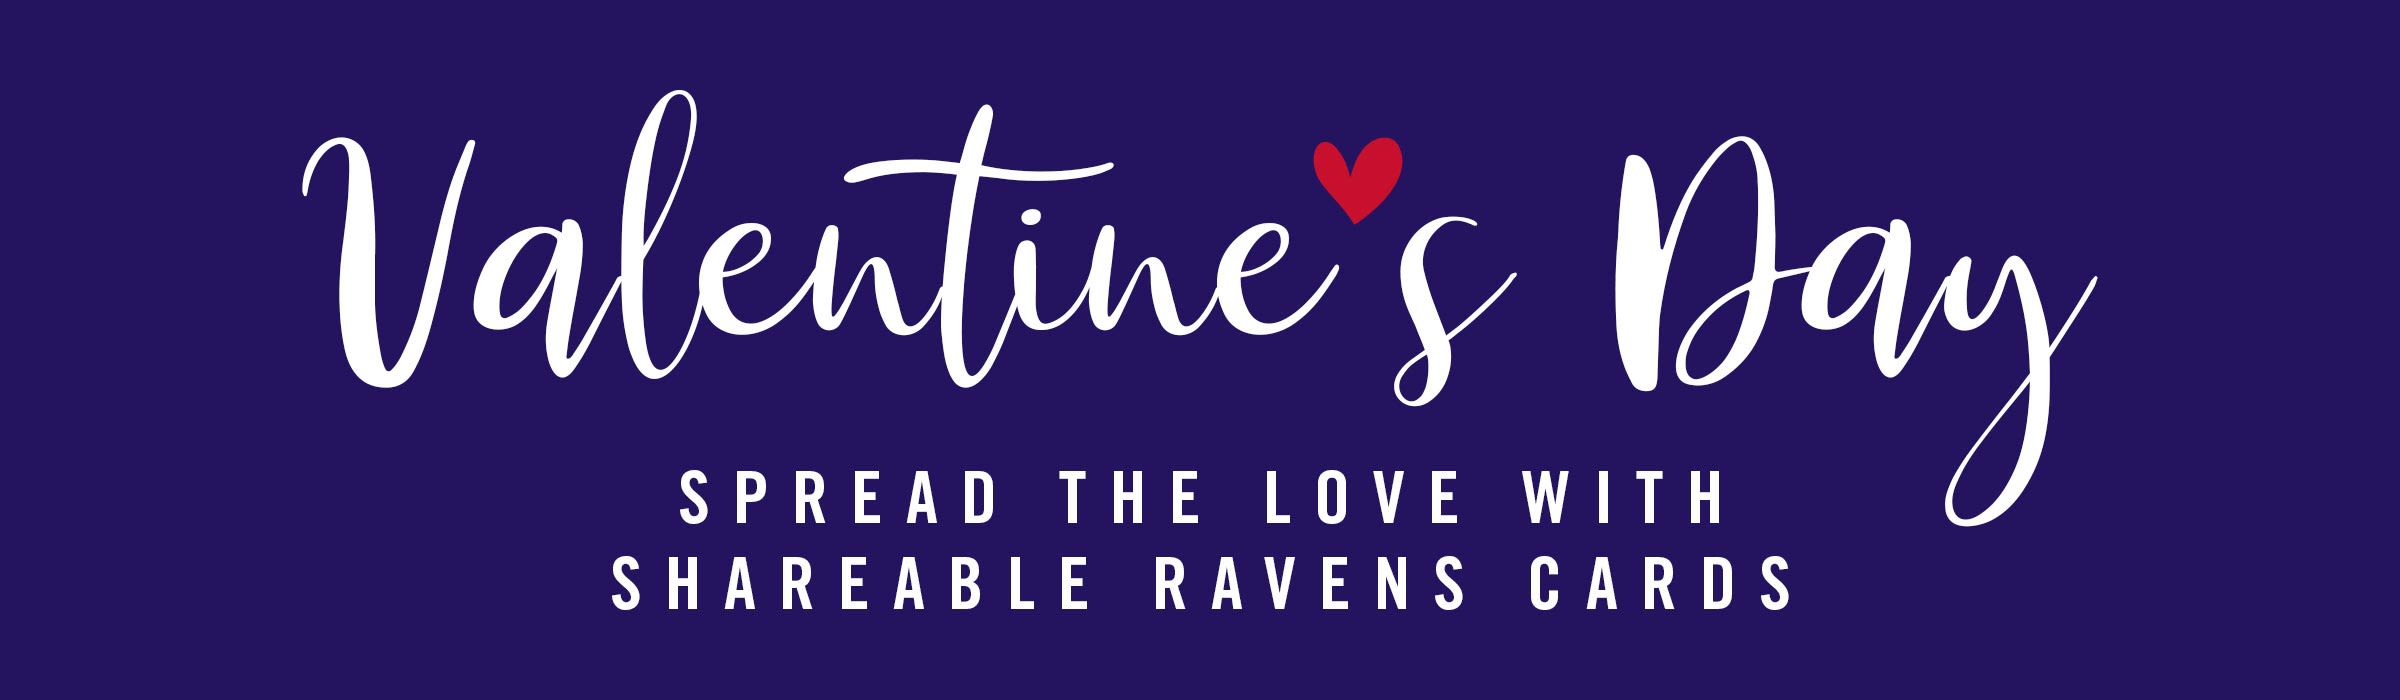 Valentine's Day  Spread the love with shareable Ravens cards